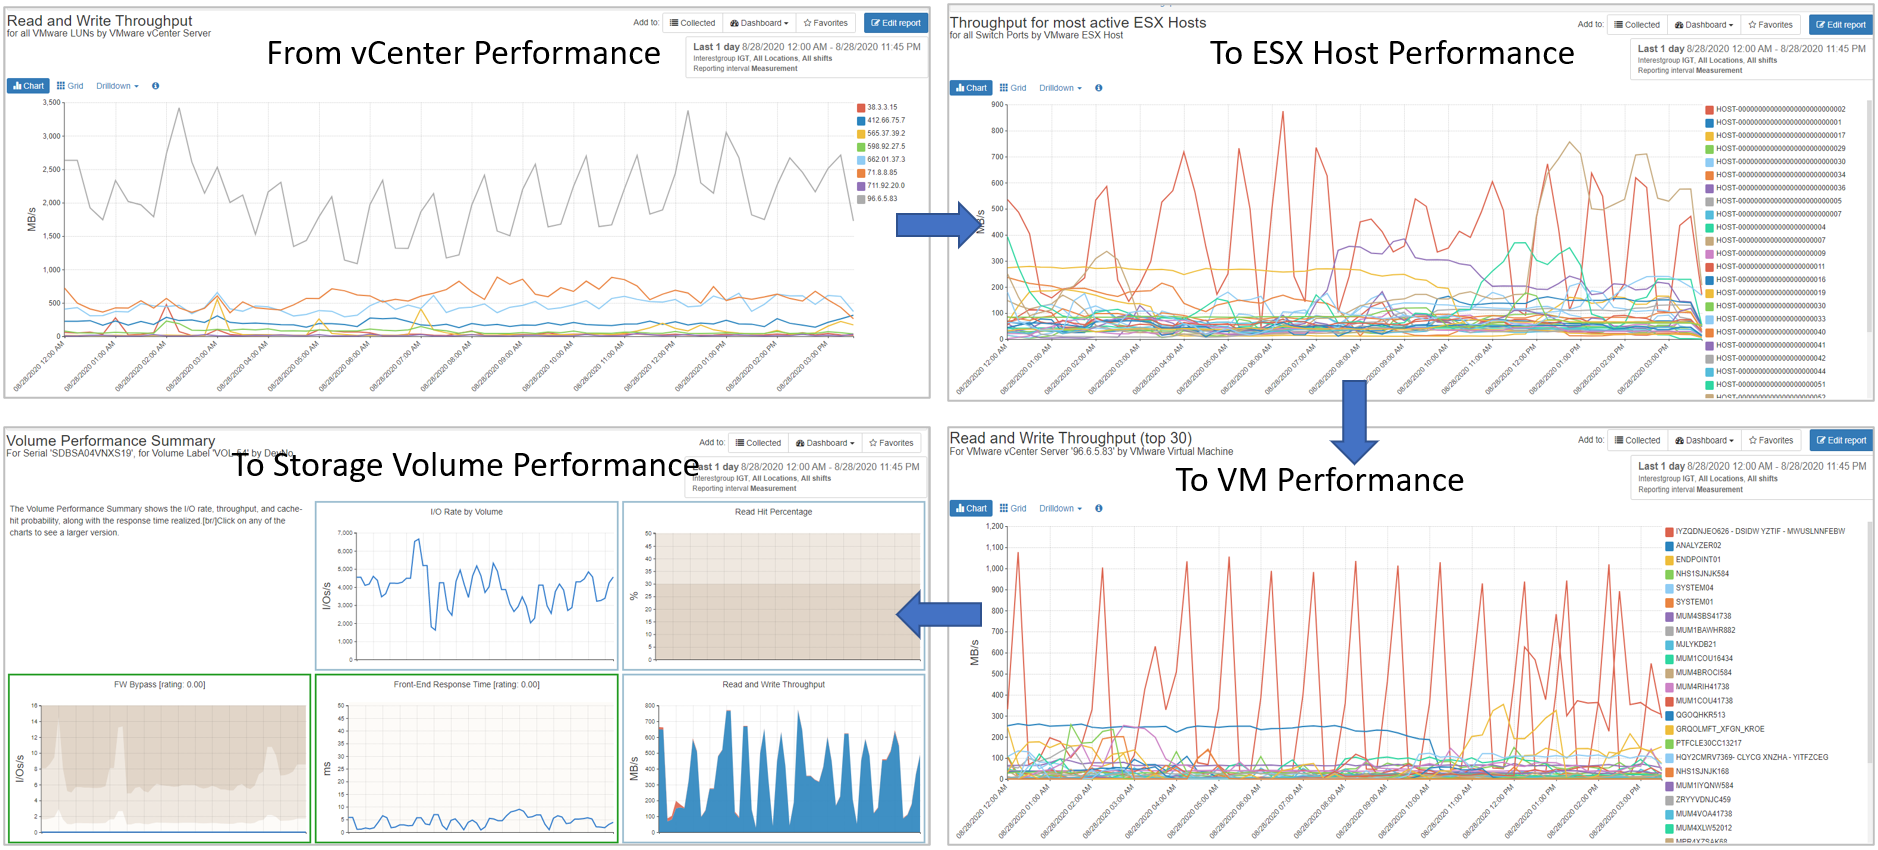 End to End VMware Performance